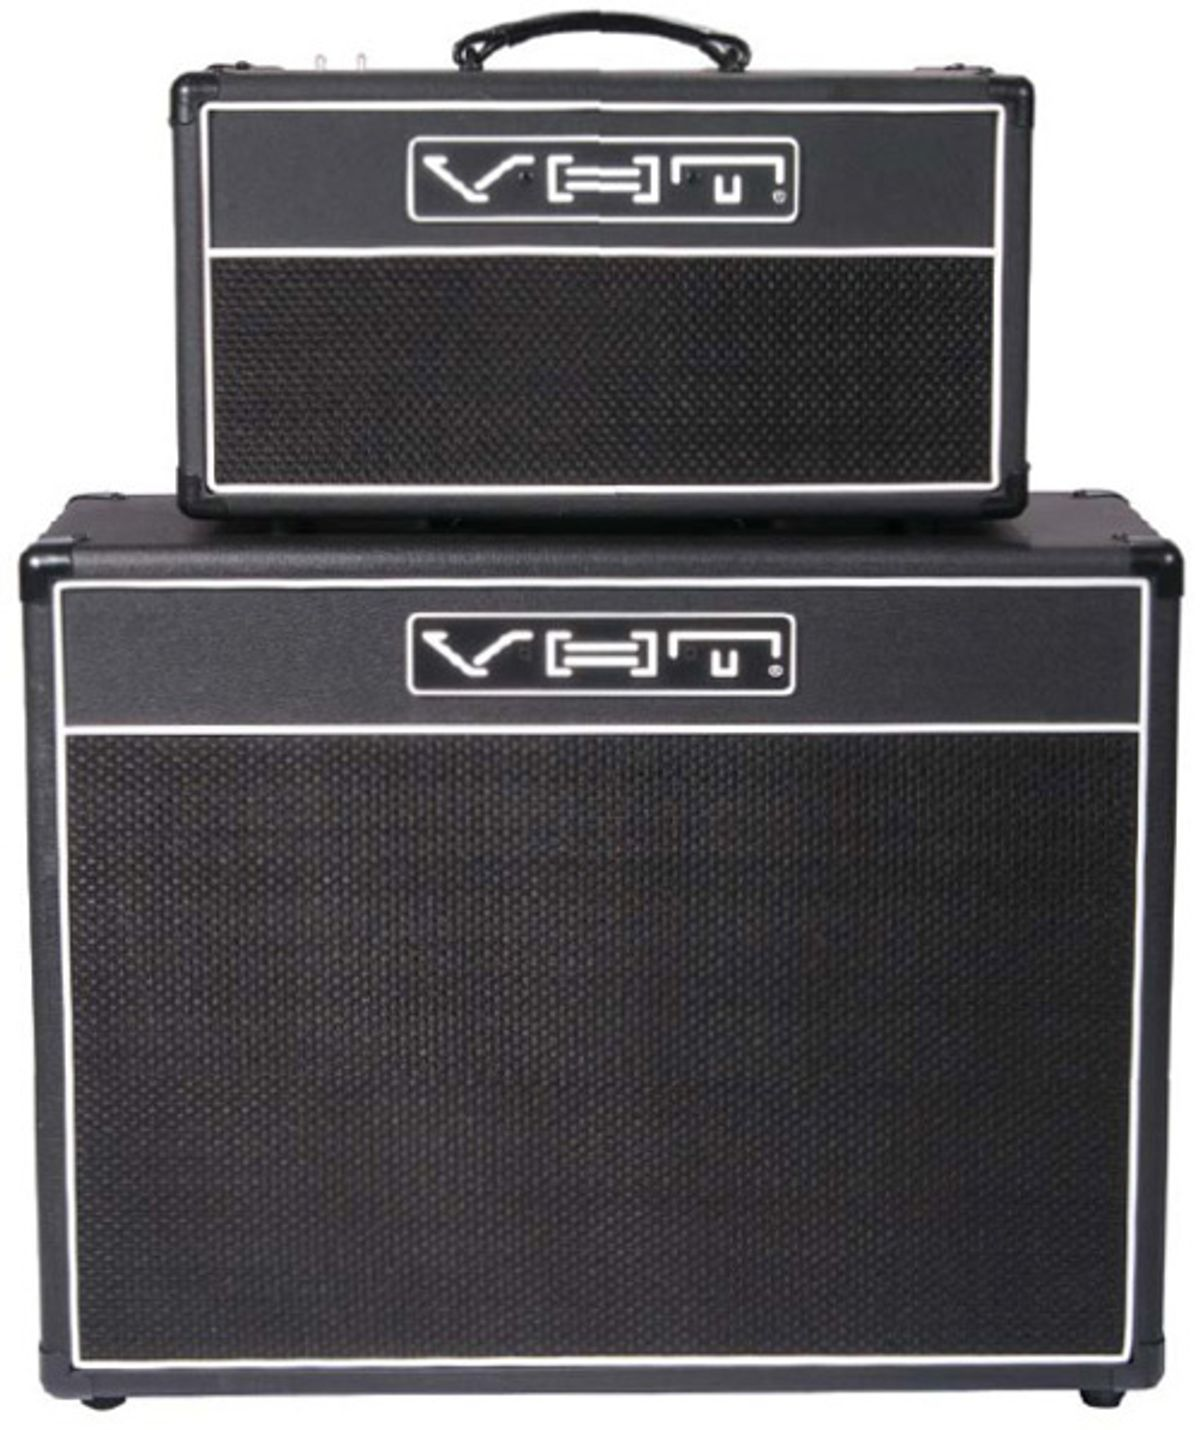 VHT Special 6 Ultra Amp Review